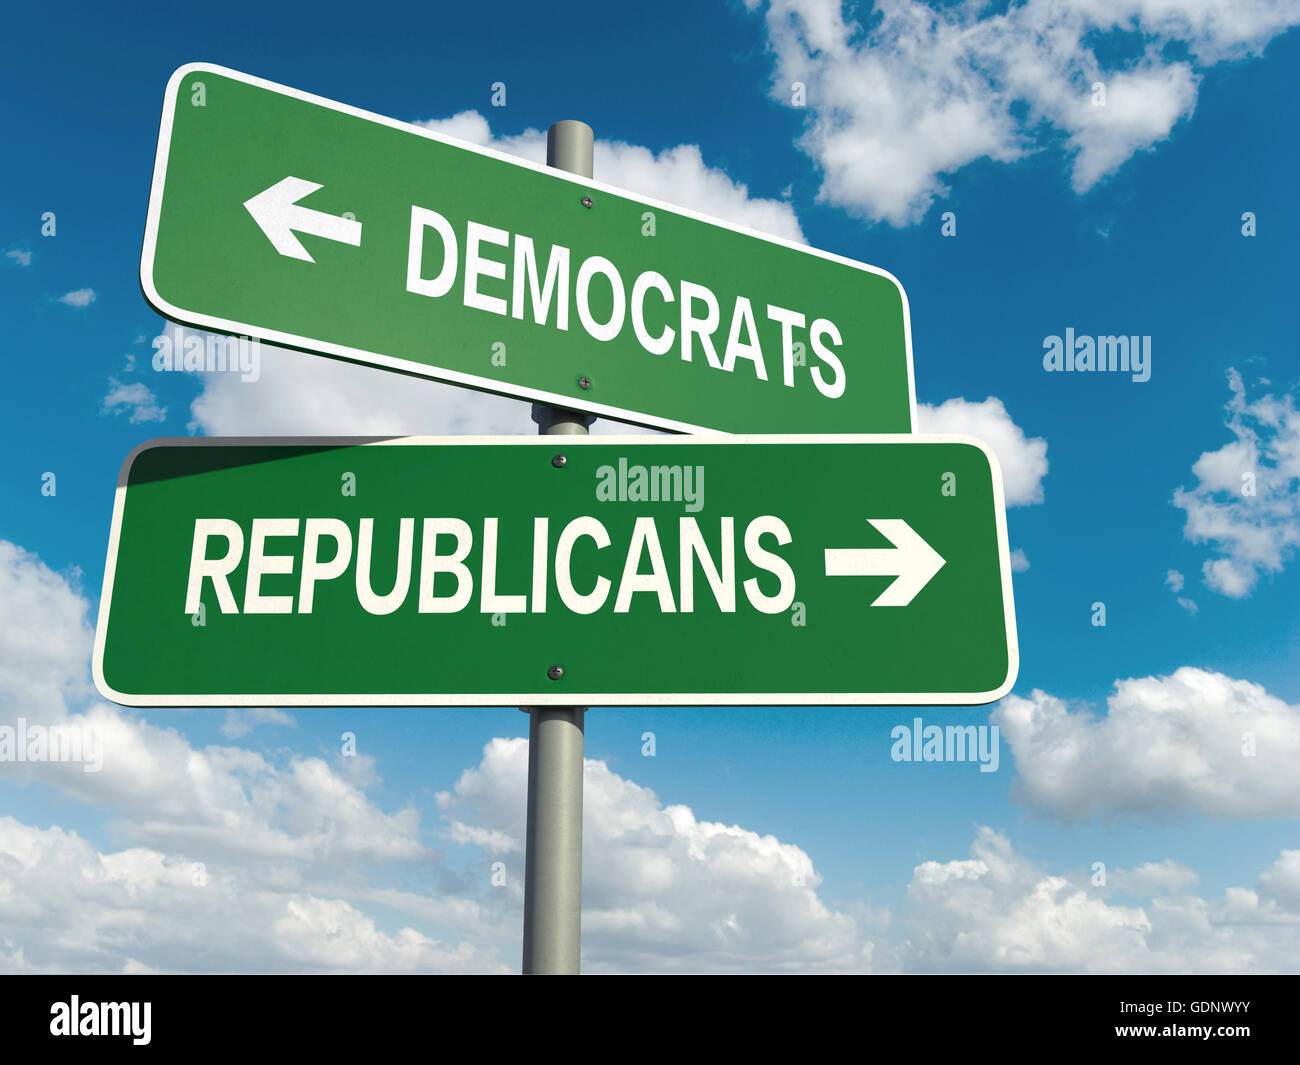 A road sign with democrats republicans words on sky background - Stock Image